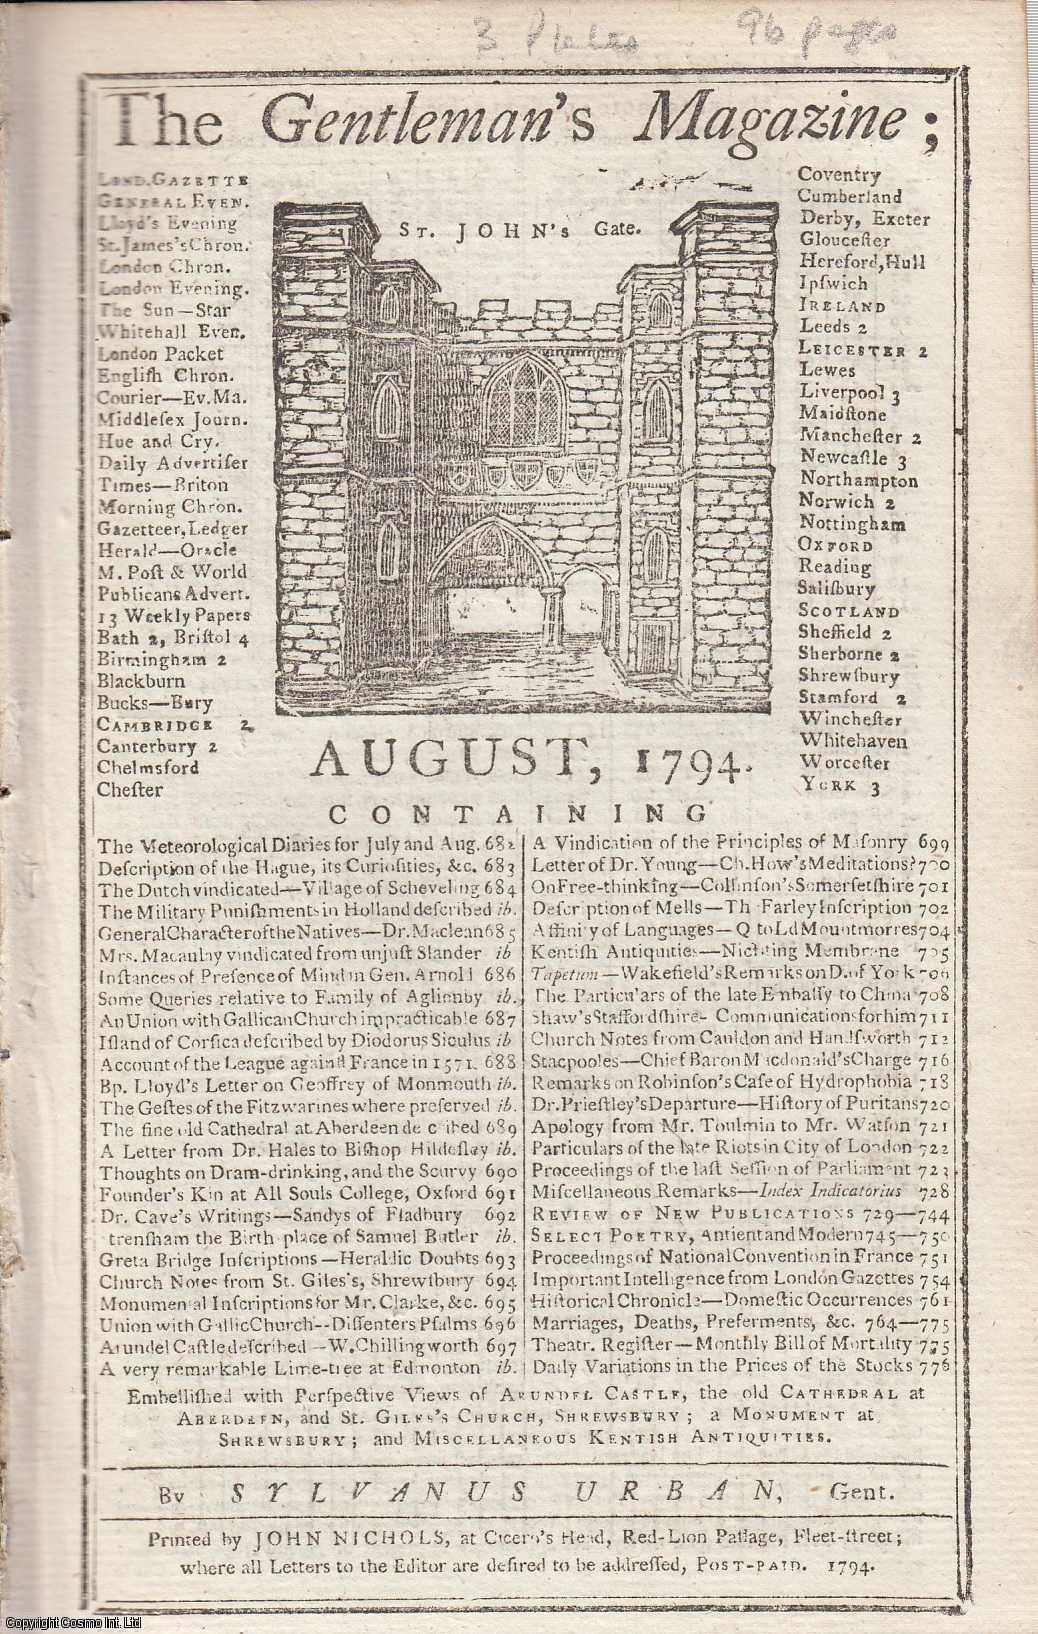 The Gentleman's Magazine for August 1794.  FEATURING Three Plates; Cathedral Church of Old Aberdeen, St. Giles, Shrewsbury and Arundel Castle & Miscellaneous Kentish Antiquities., Urban, Sylvanus.